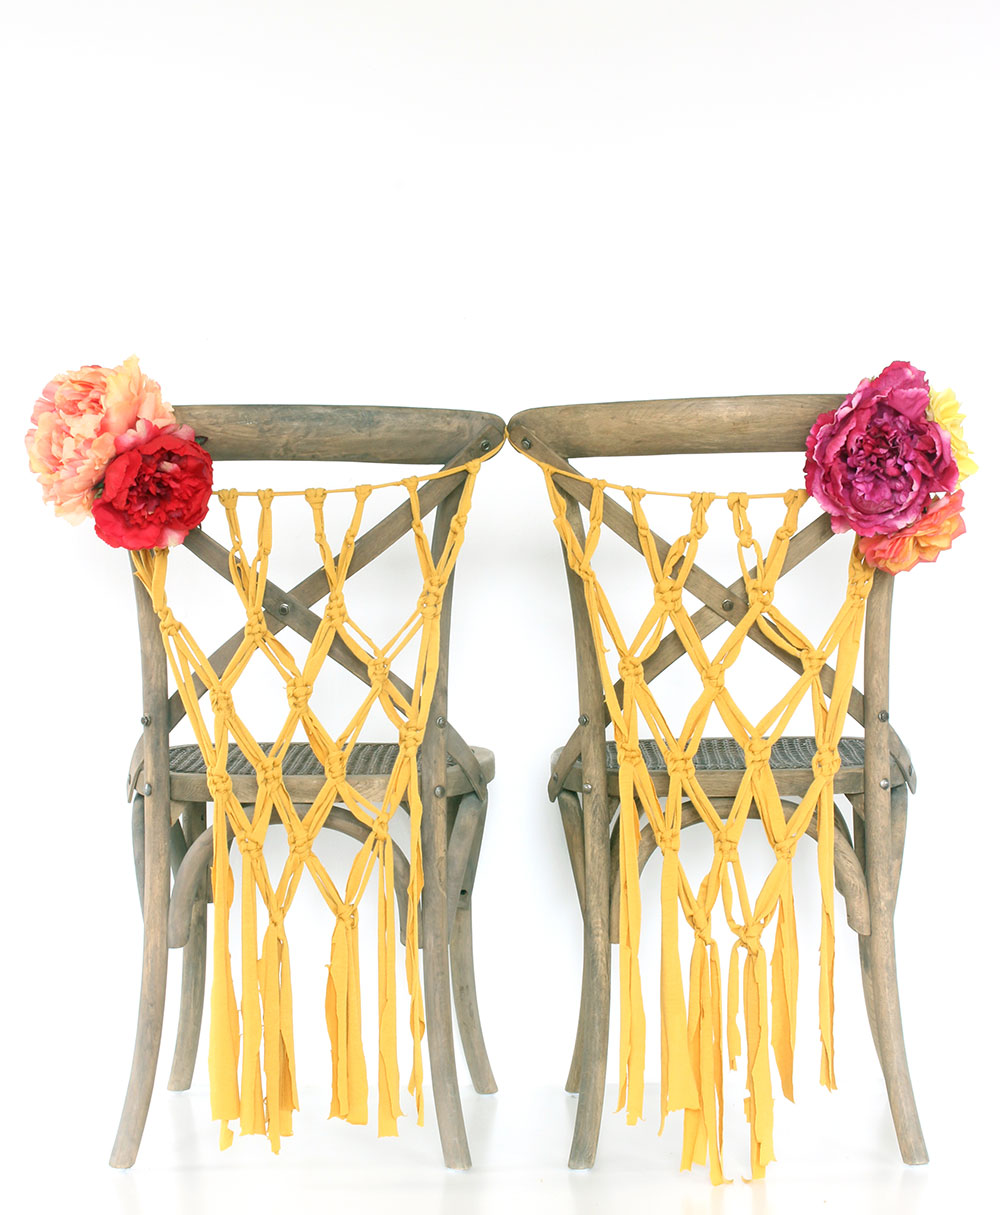 Handmade macrame boho wedding chair hangers by Sweet Escape Occasions